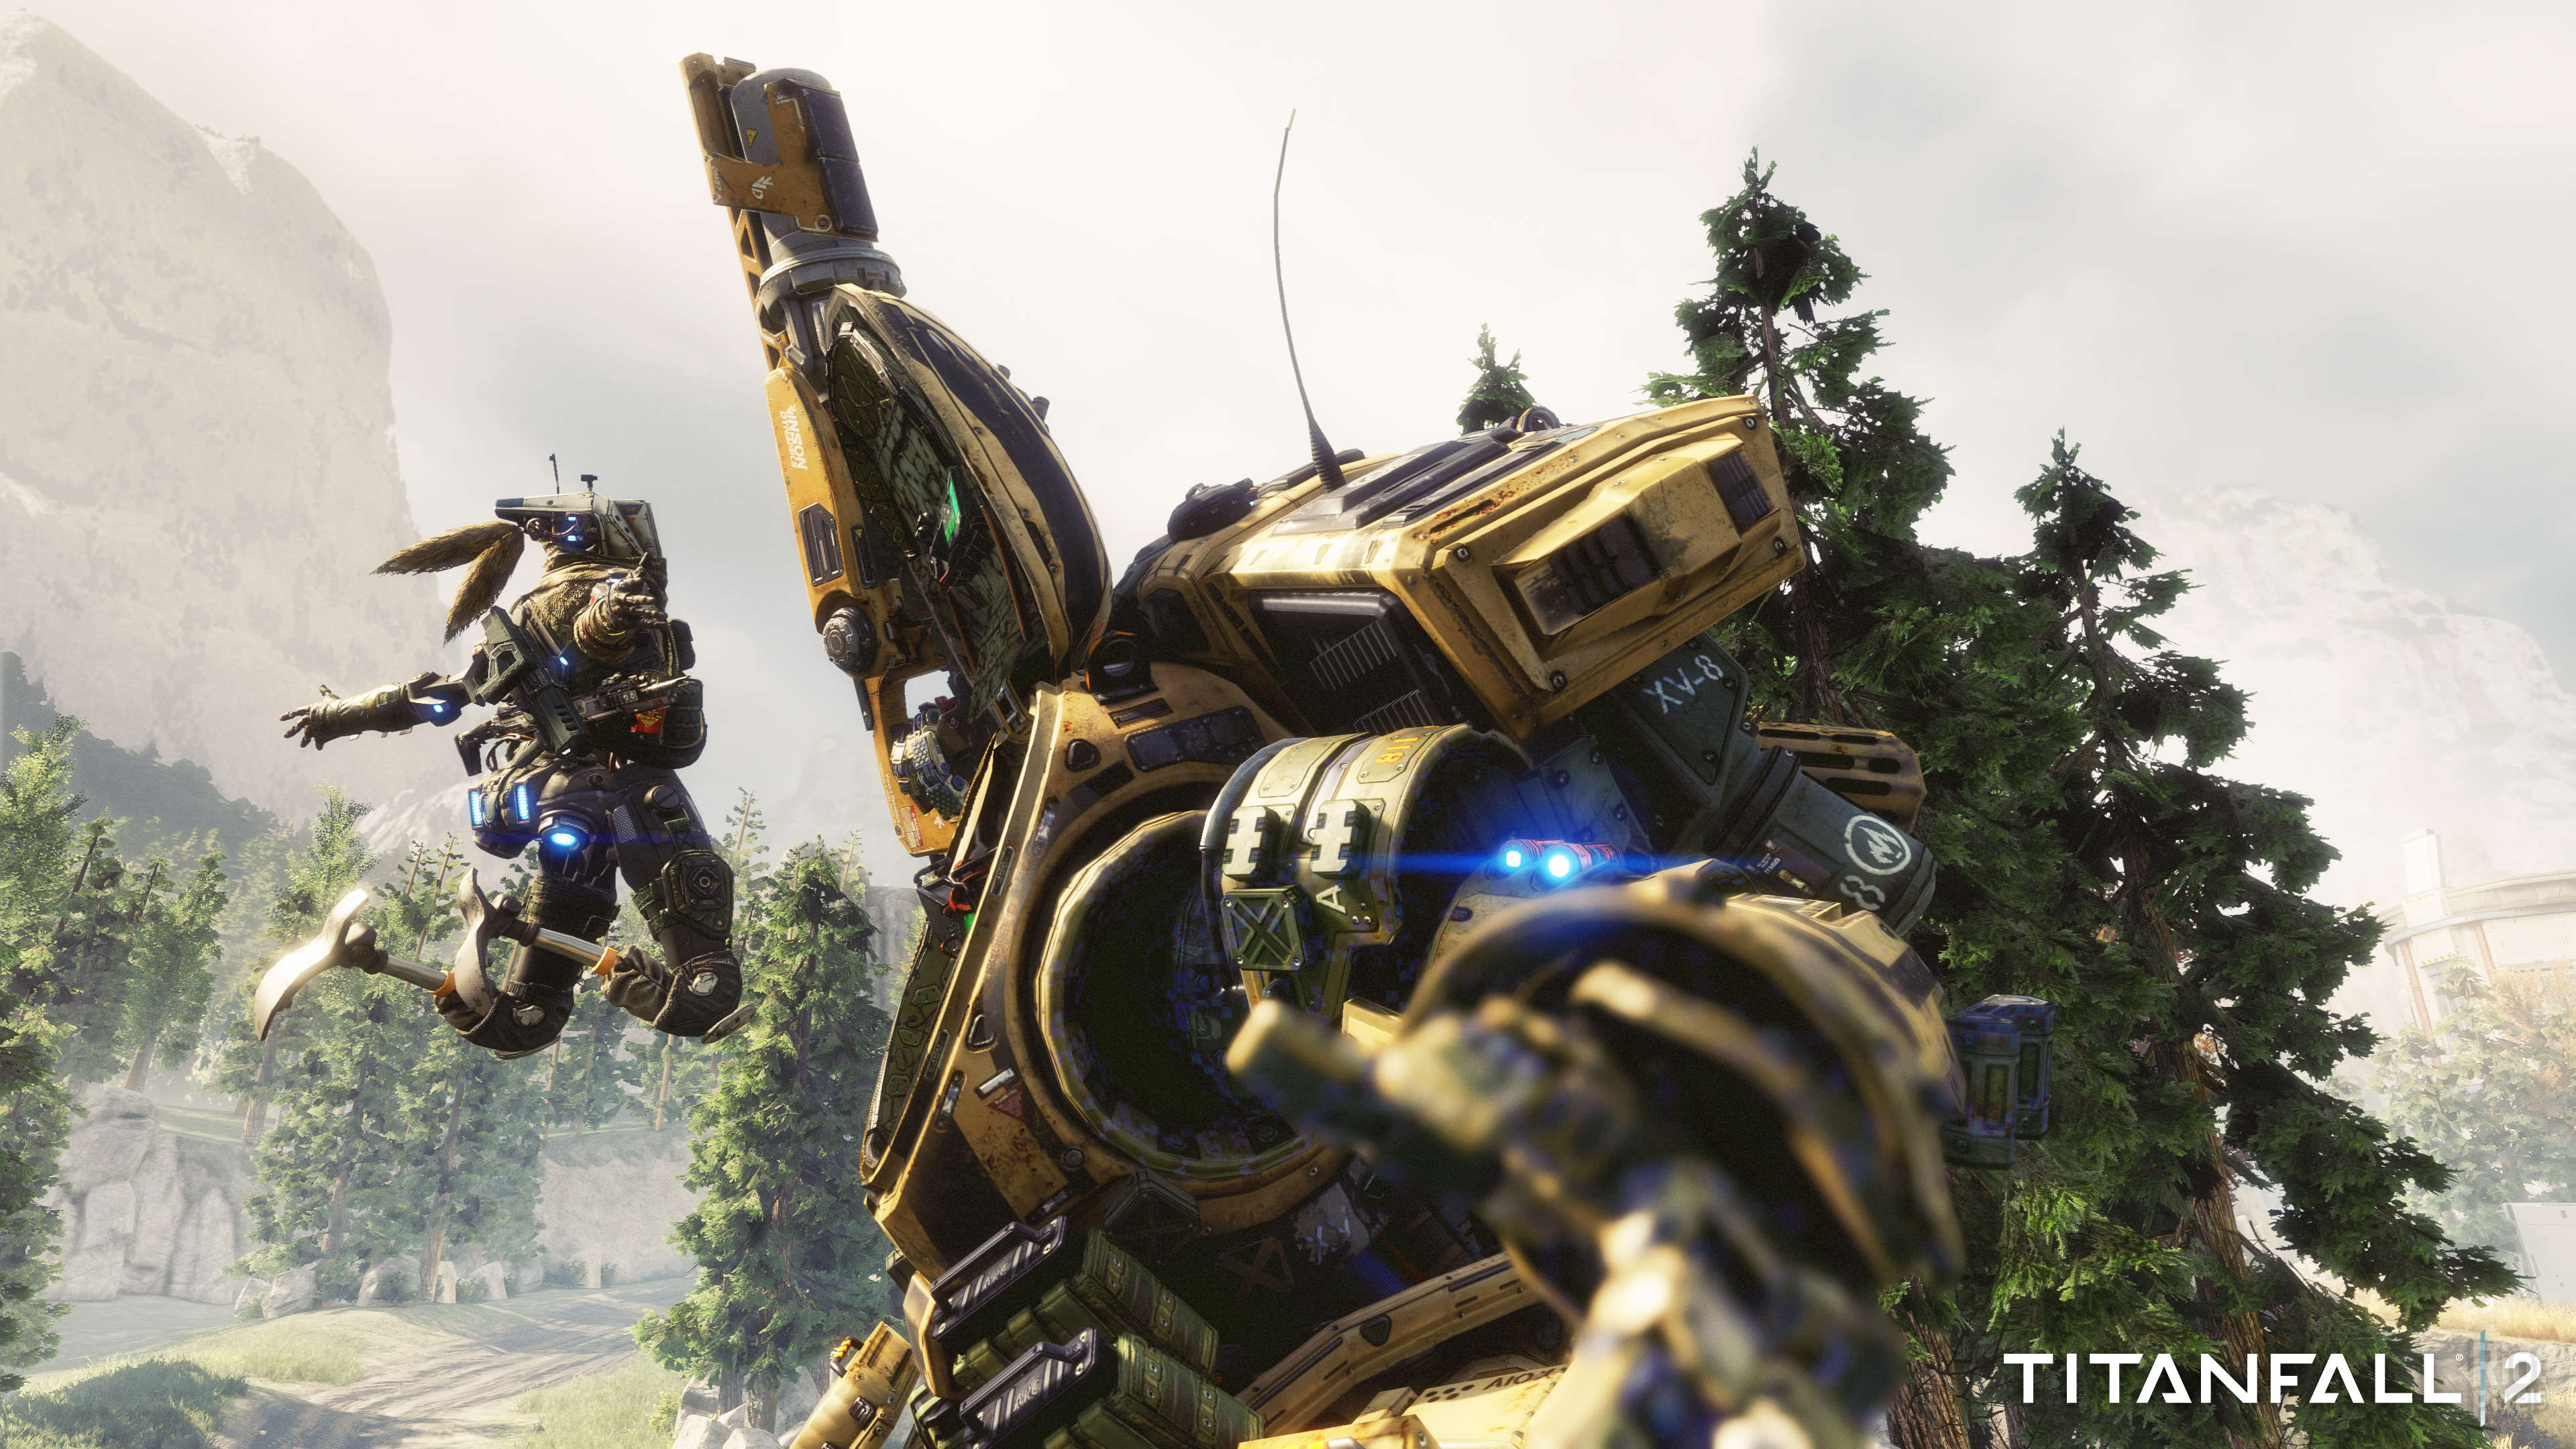 Check Out Trailers For Titanfall 2 Campaign and Multiplayer Modes screenshot.titanfall 2.3840x2160.2016 06 12.12